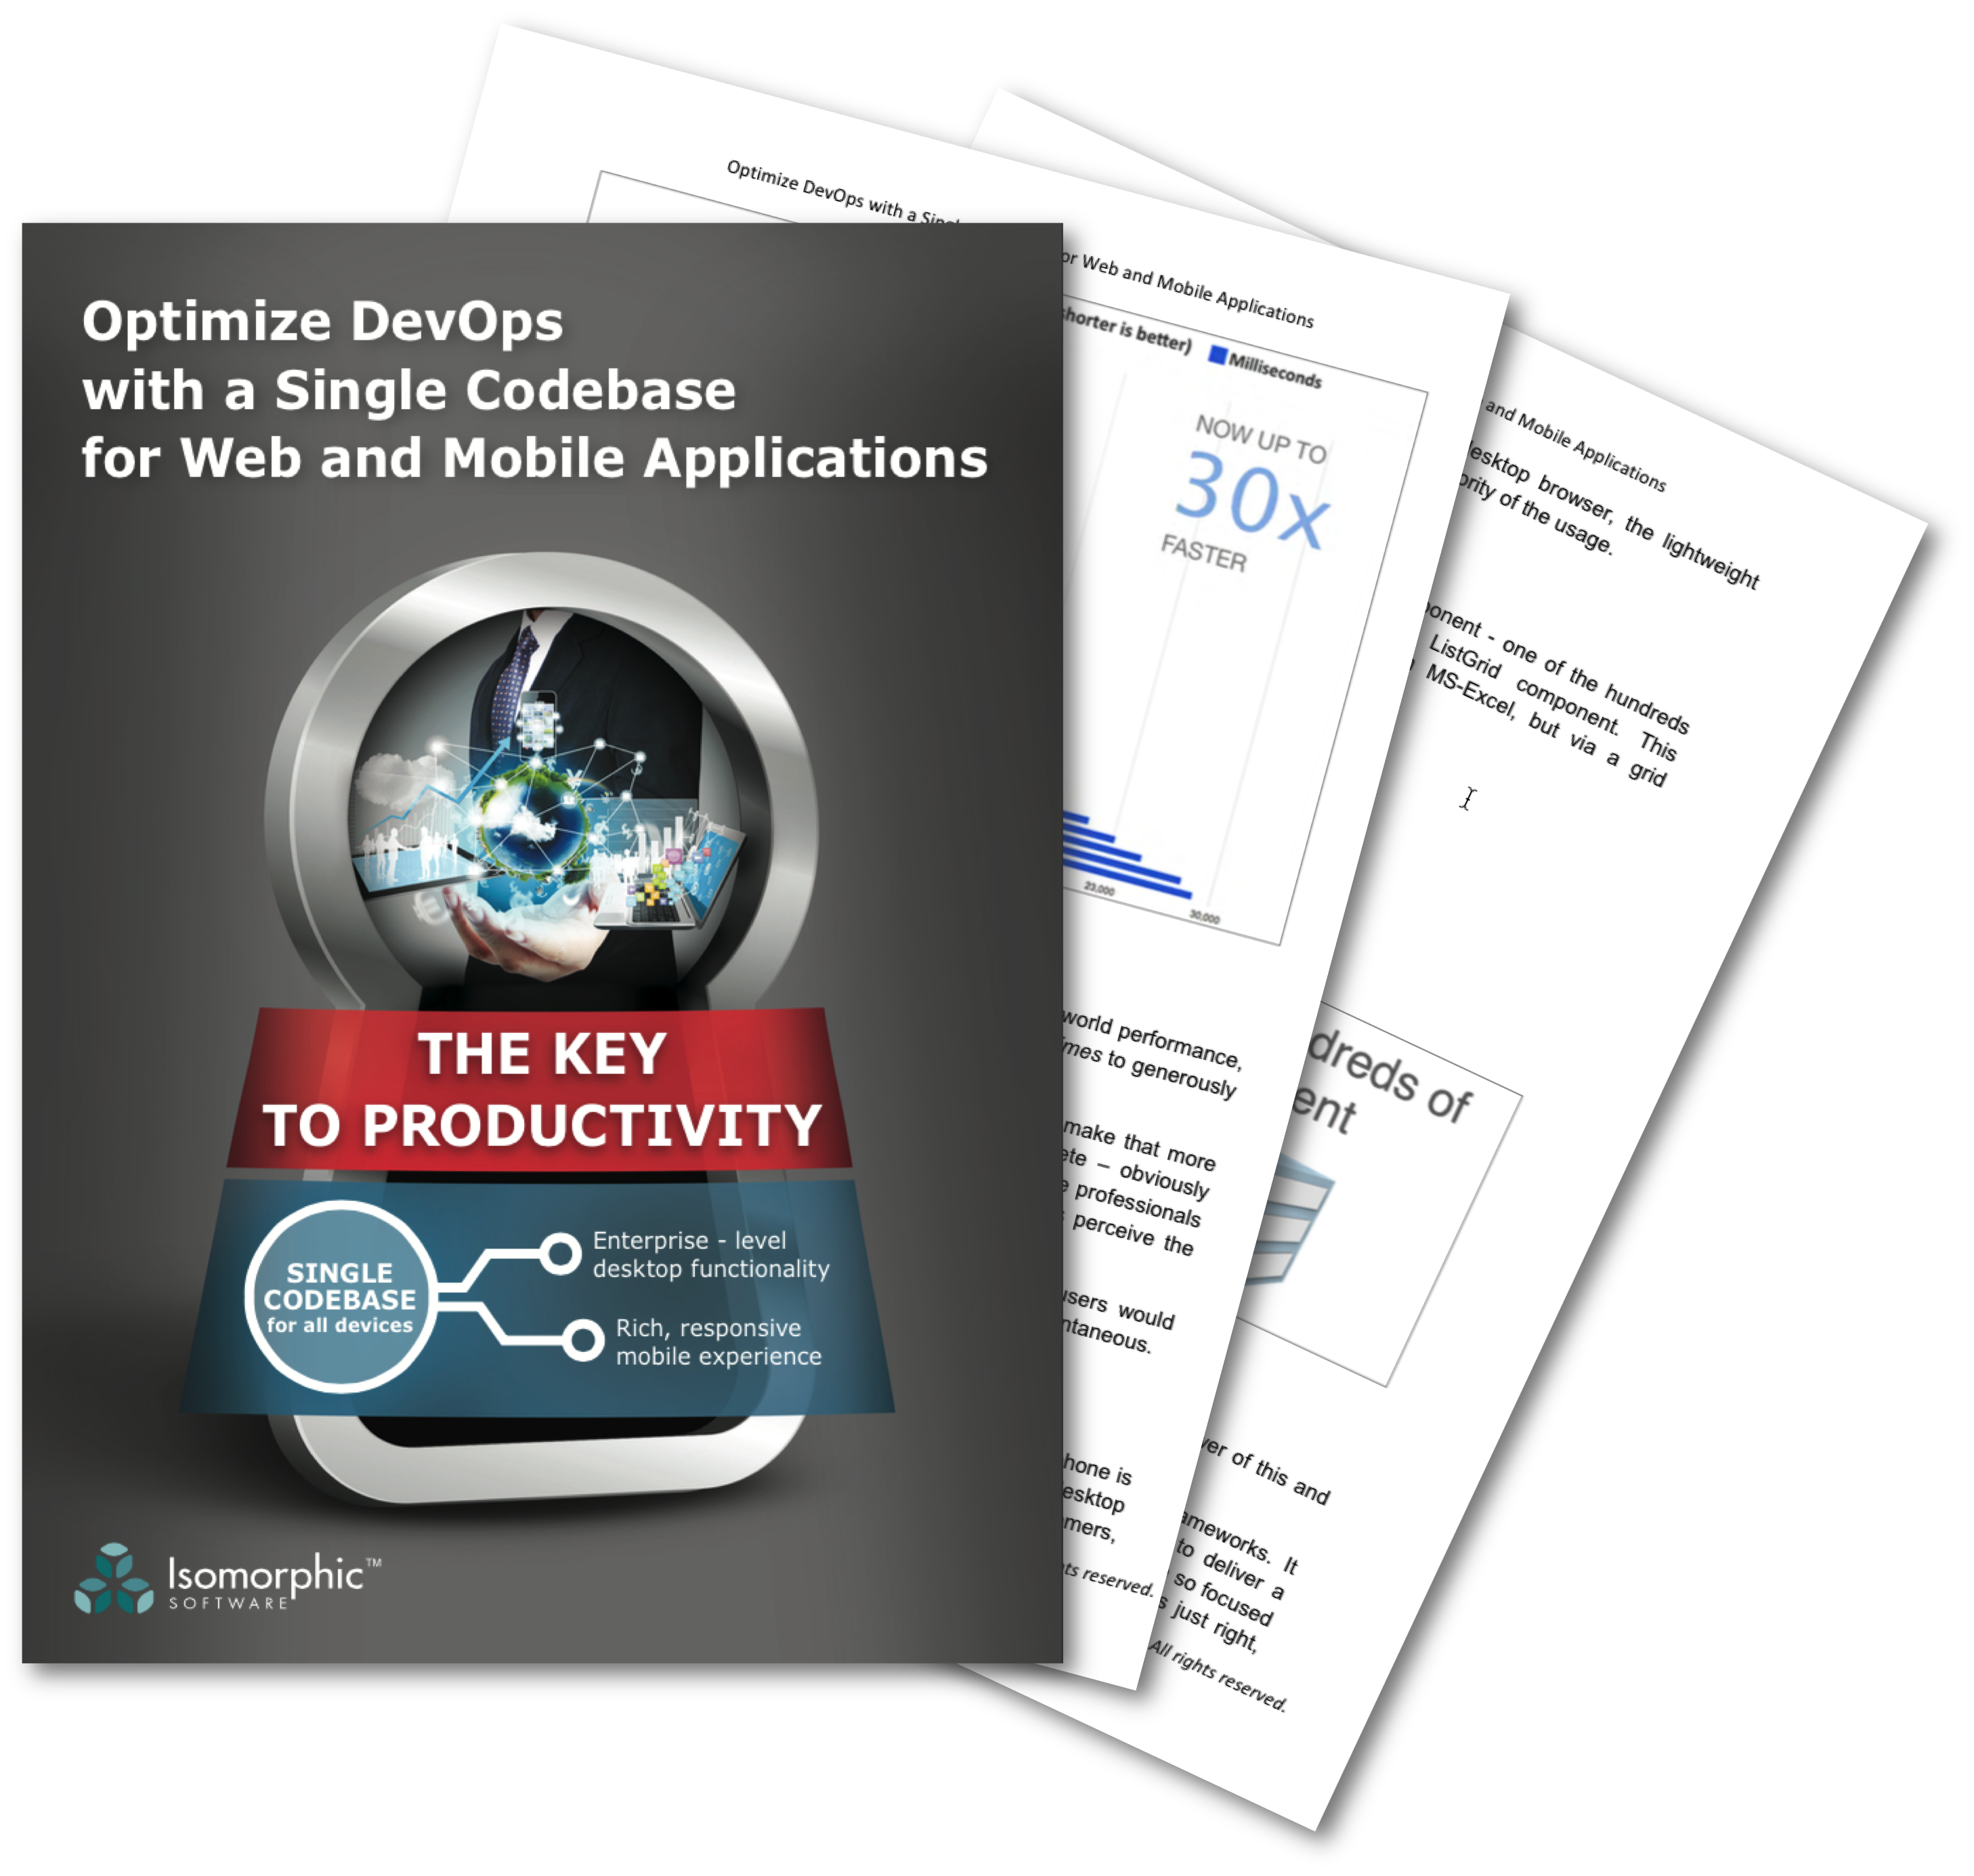 Optimize DevOps with a Single Codebase for Web and Mobile Applications